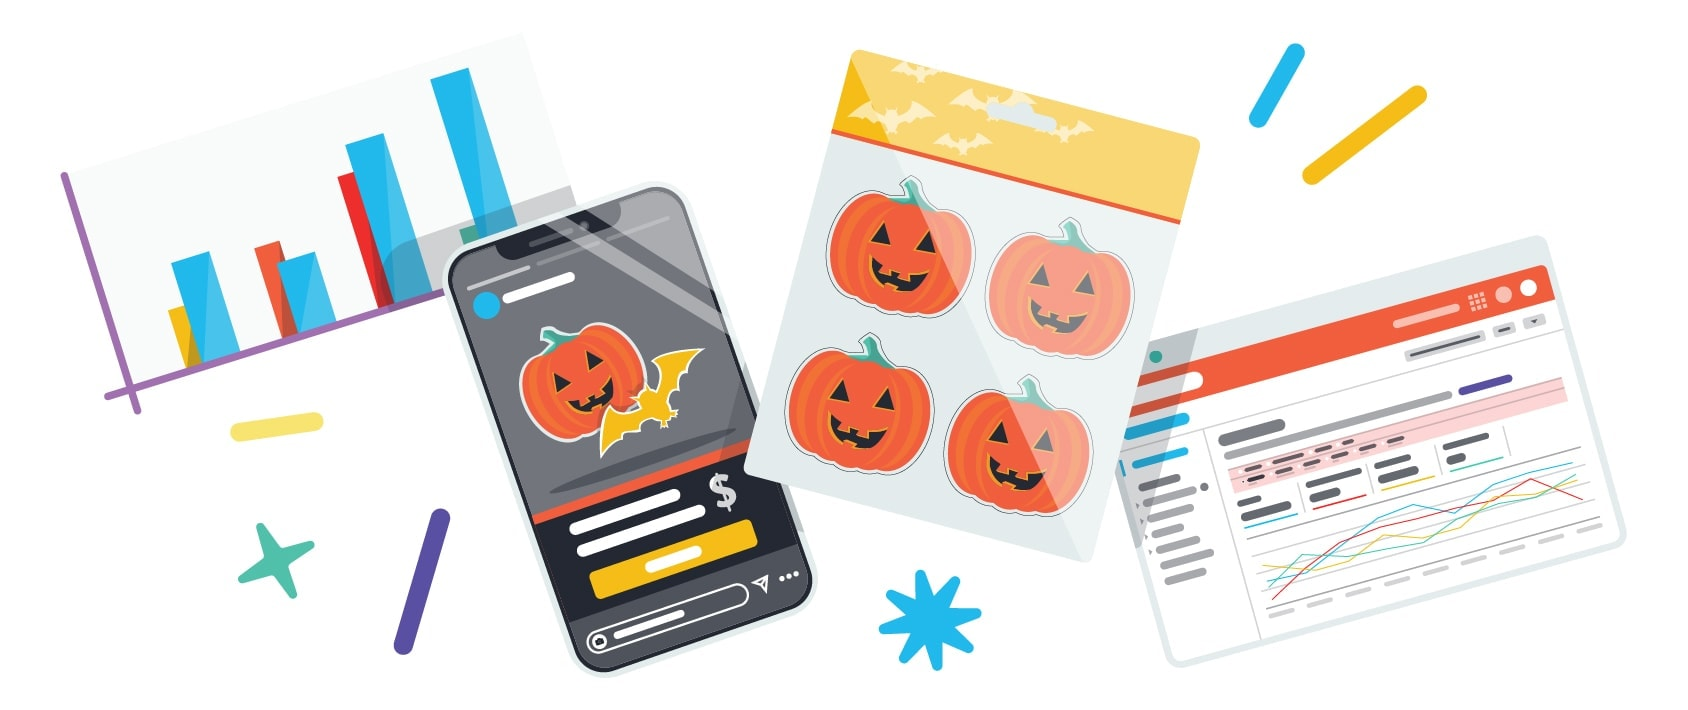 Business Ideas for Teens - Sell Stickers Online